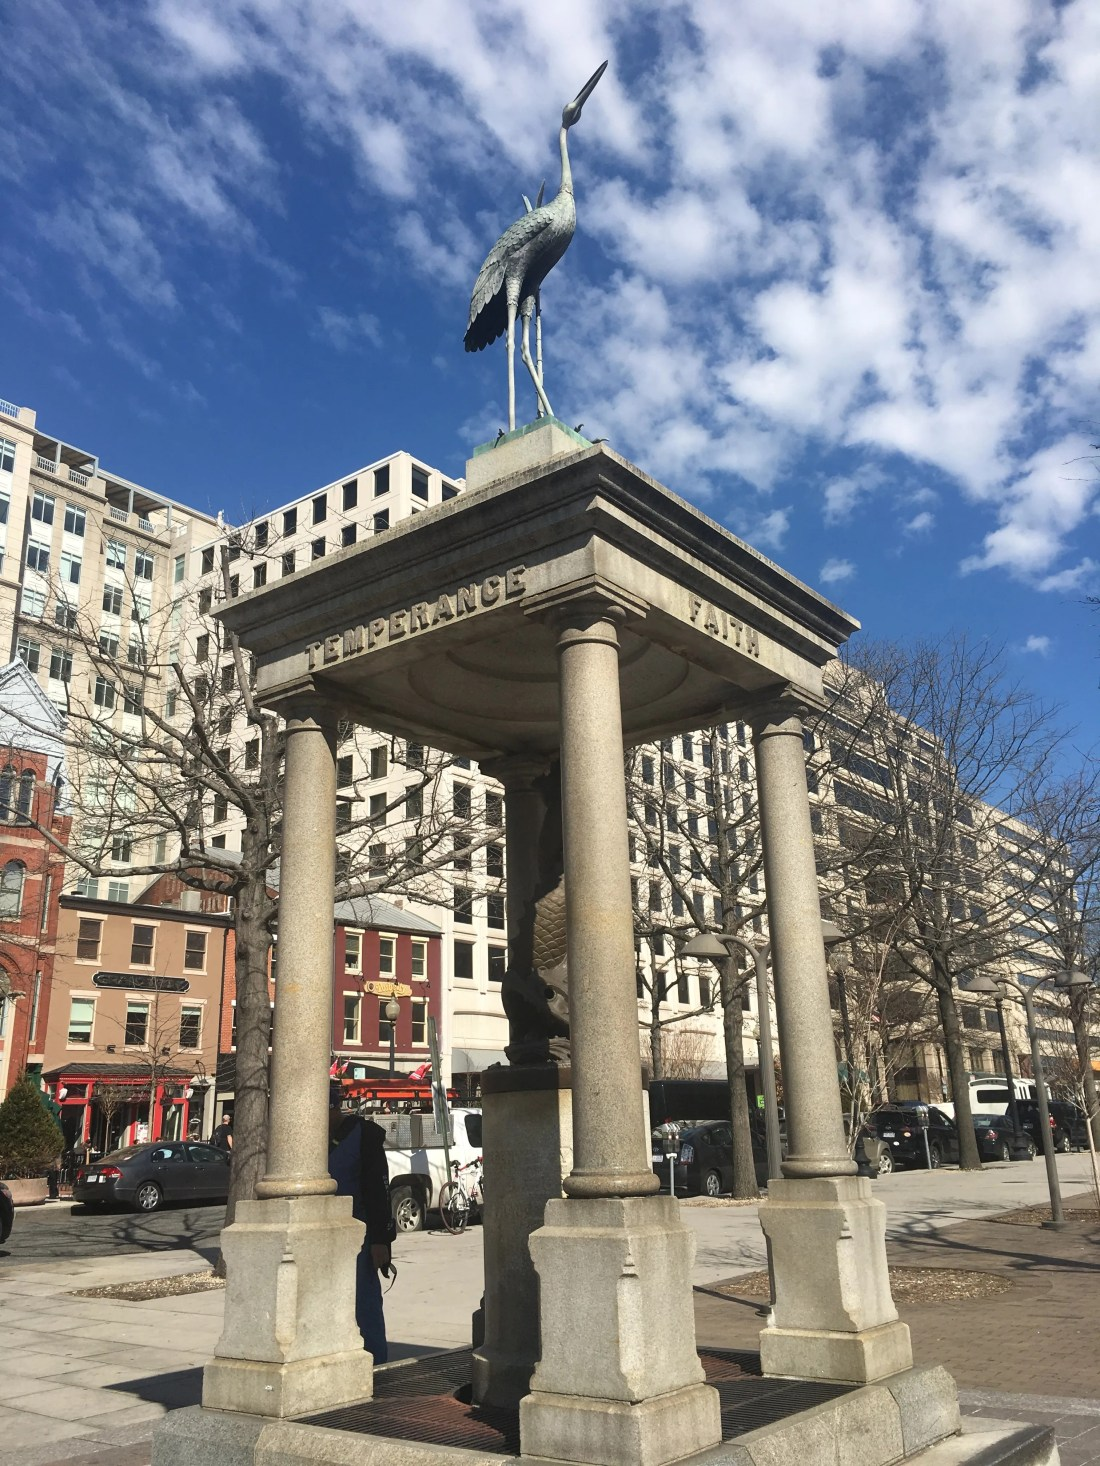 The Temperance Fountain, located in Washington, D.C.'s Indiana Plaza, has been called the city's ugliest monument.